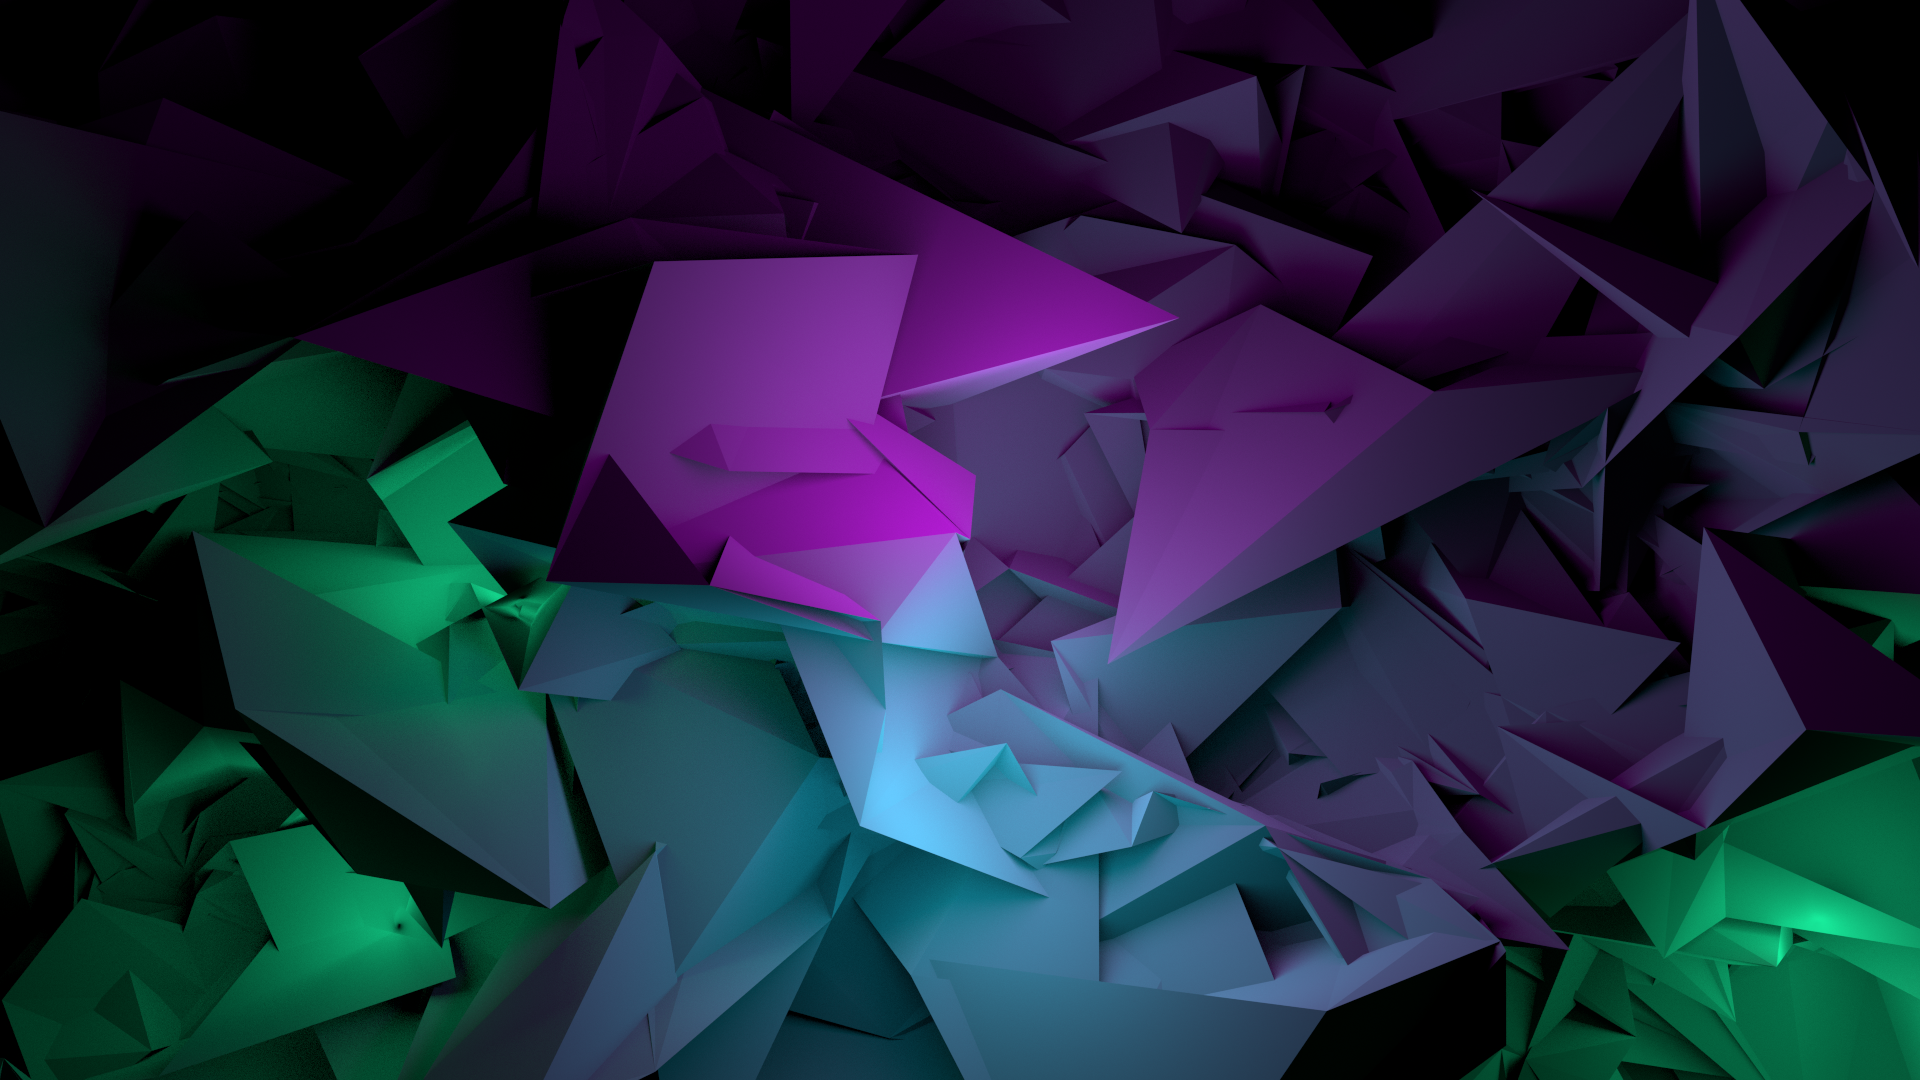 Abstract Artistic 1920x1080